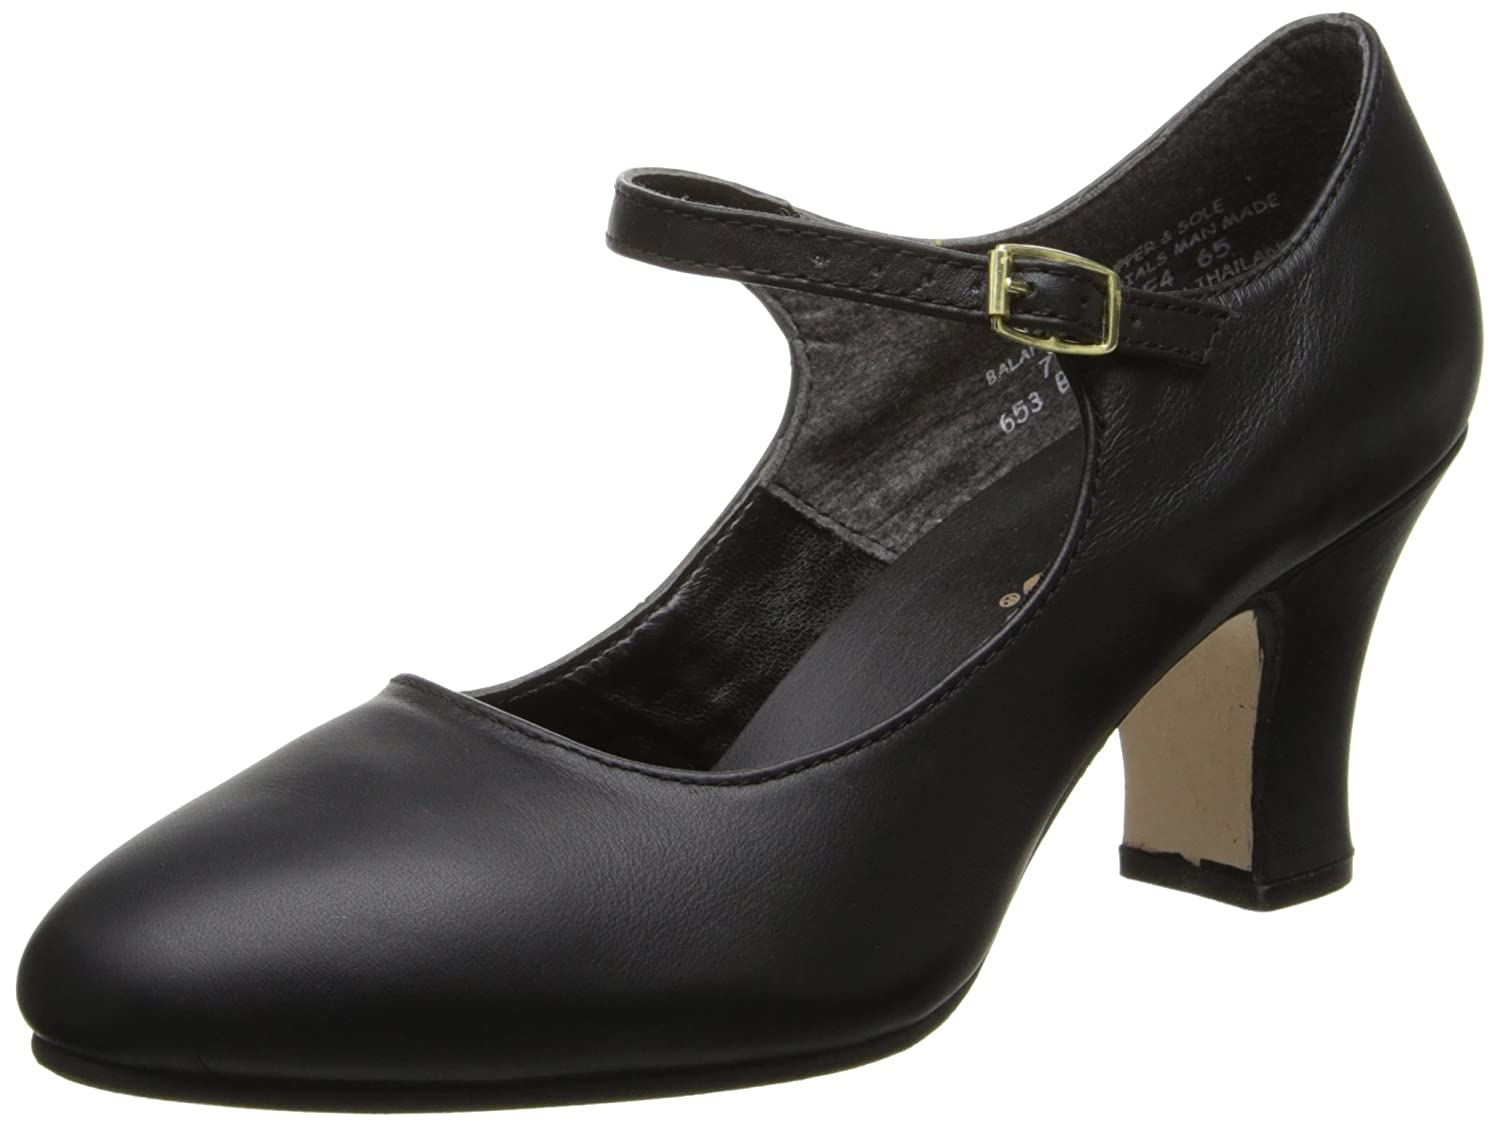 Capezio Women's Manhattan Character Shoe, B0026M81Z6 9.5 M US|Black